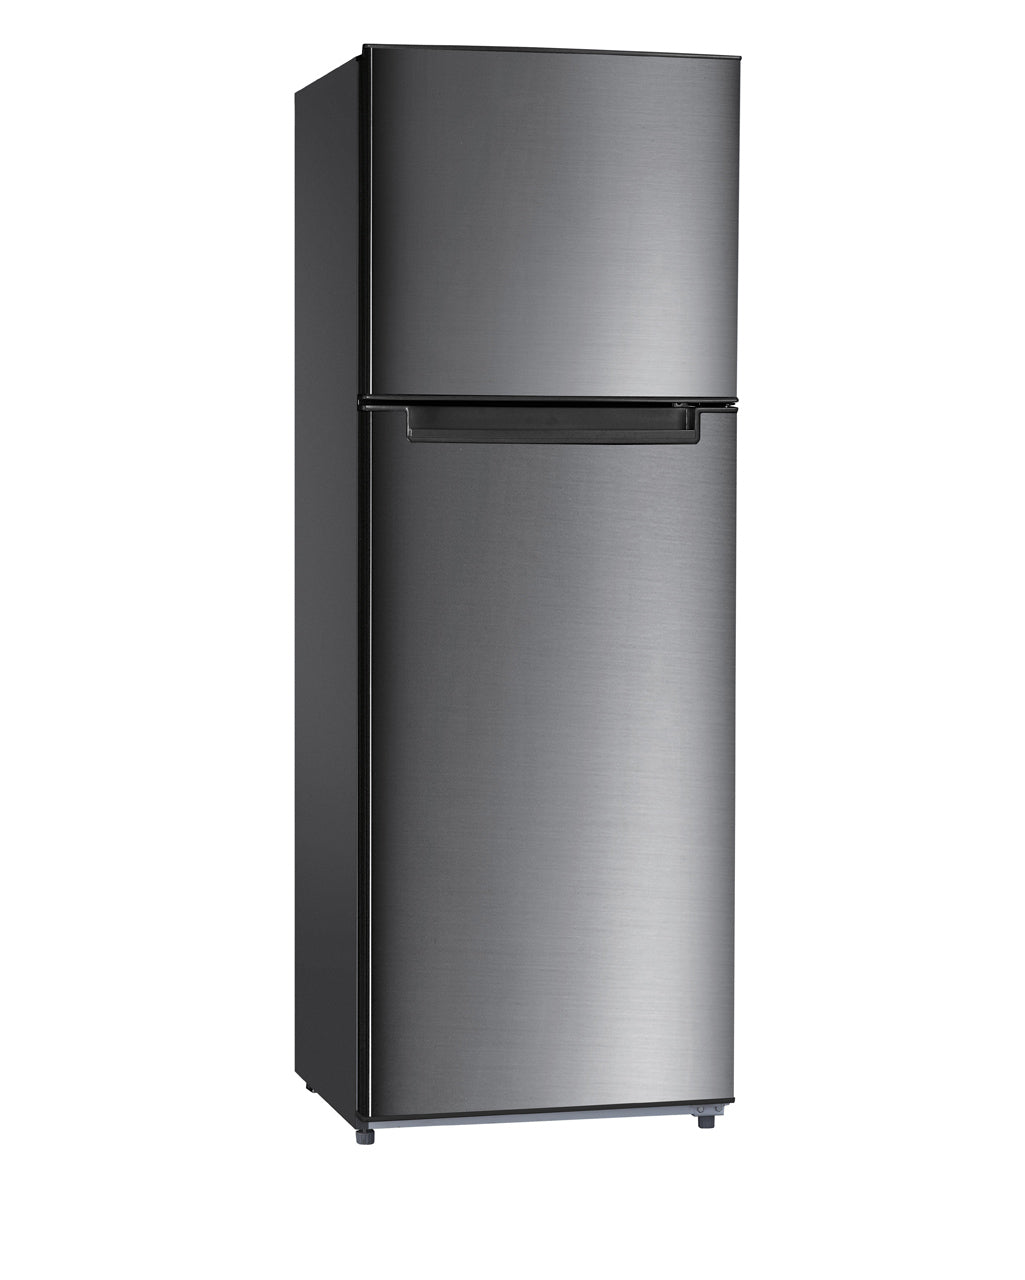 Heller Stainless Steel 366L Fridge - BRAND NEW 2 YEAR WARRANTY - DMS Appliances